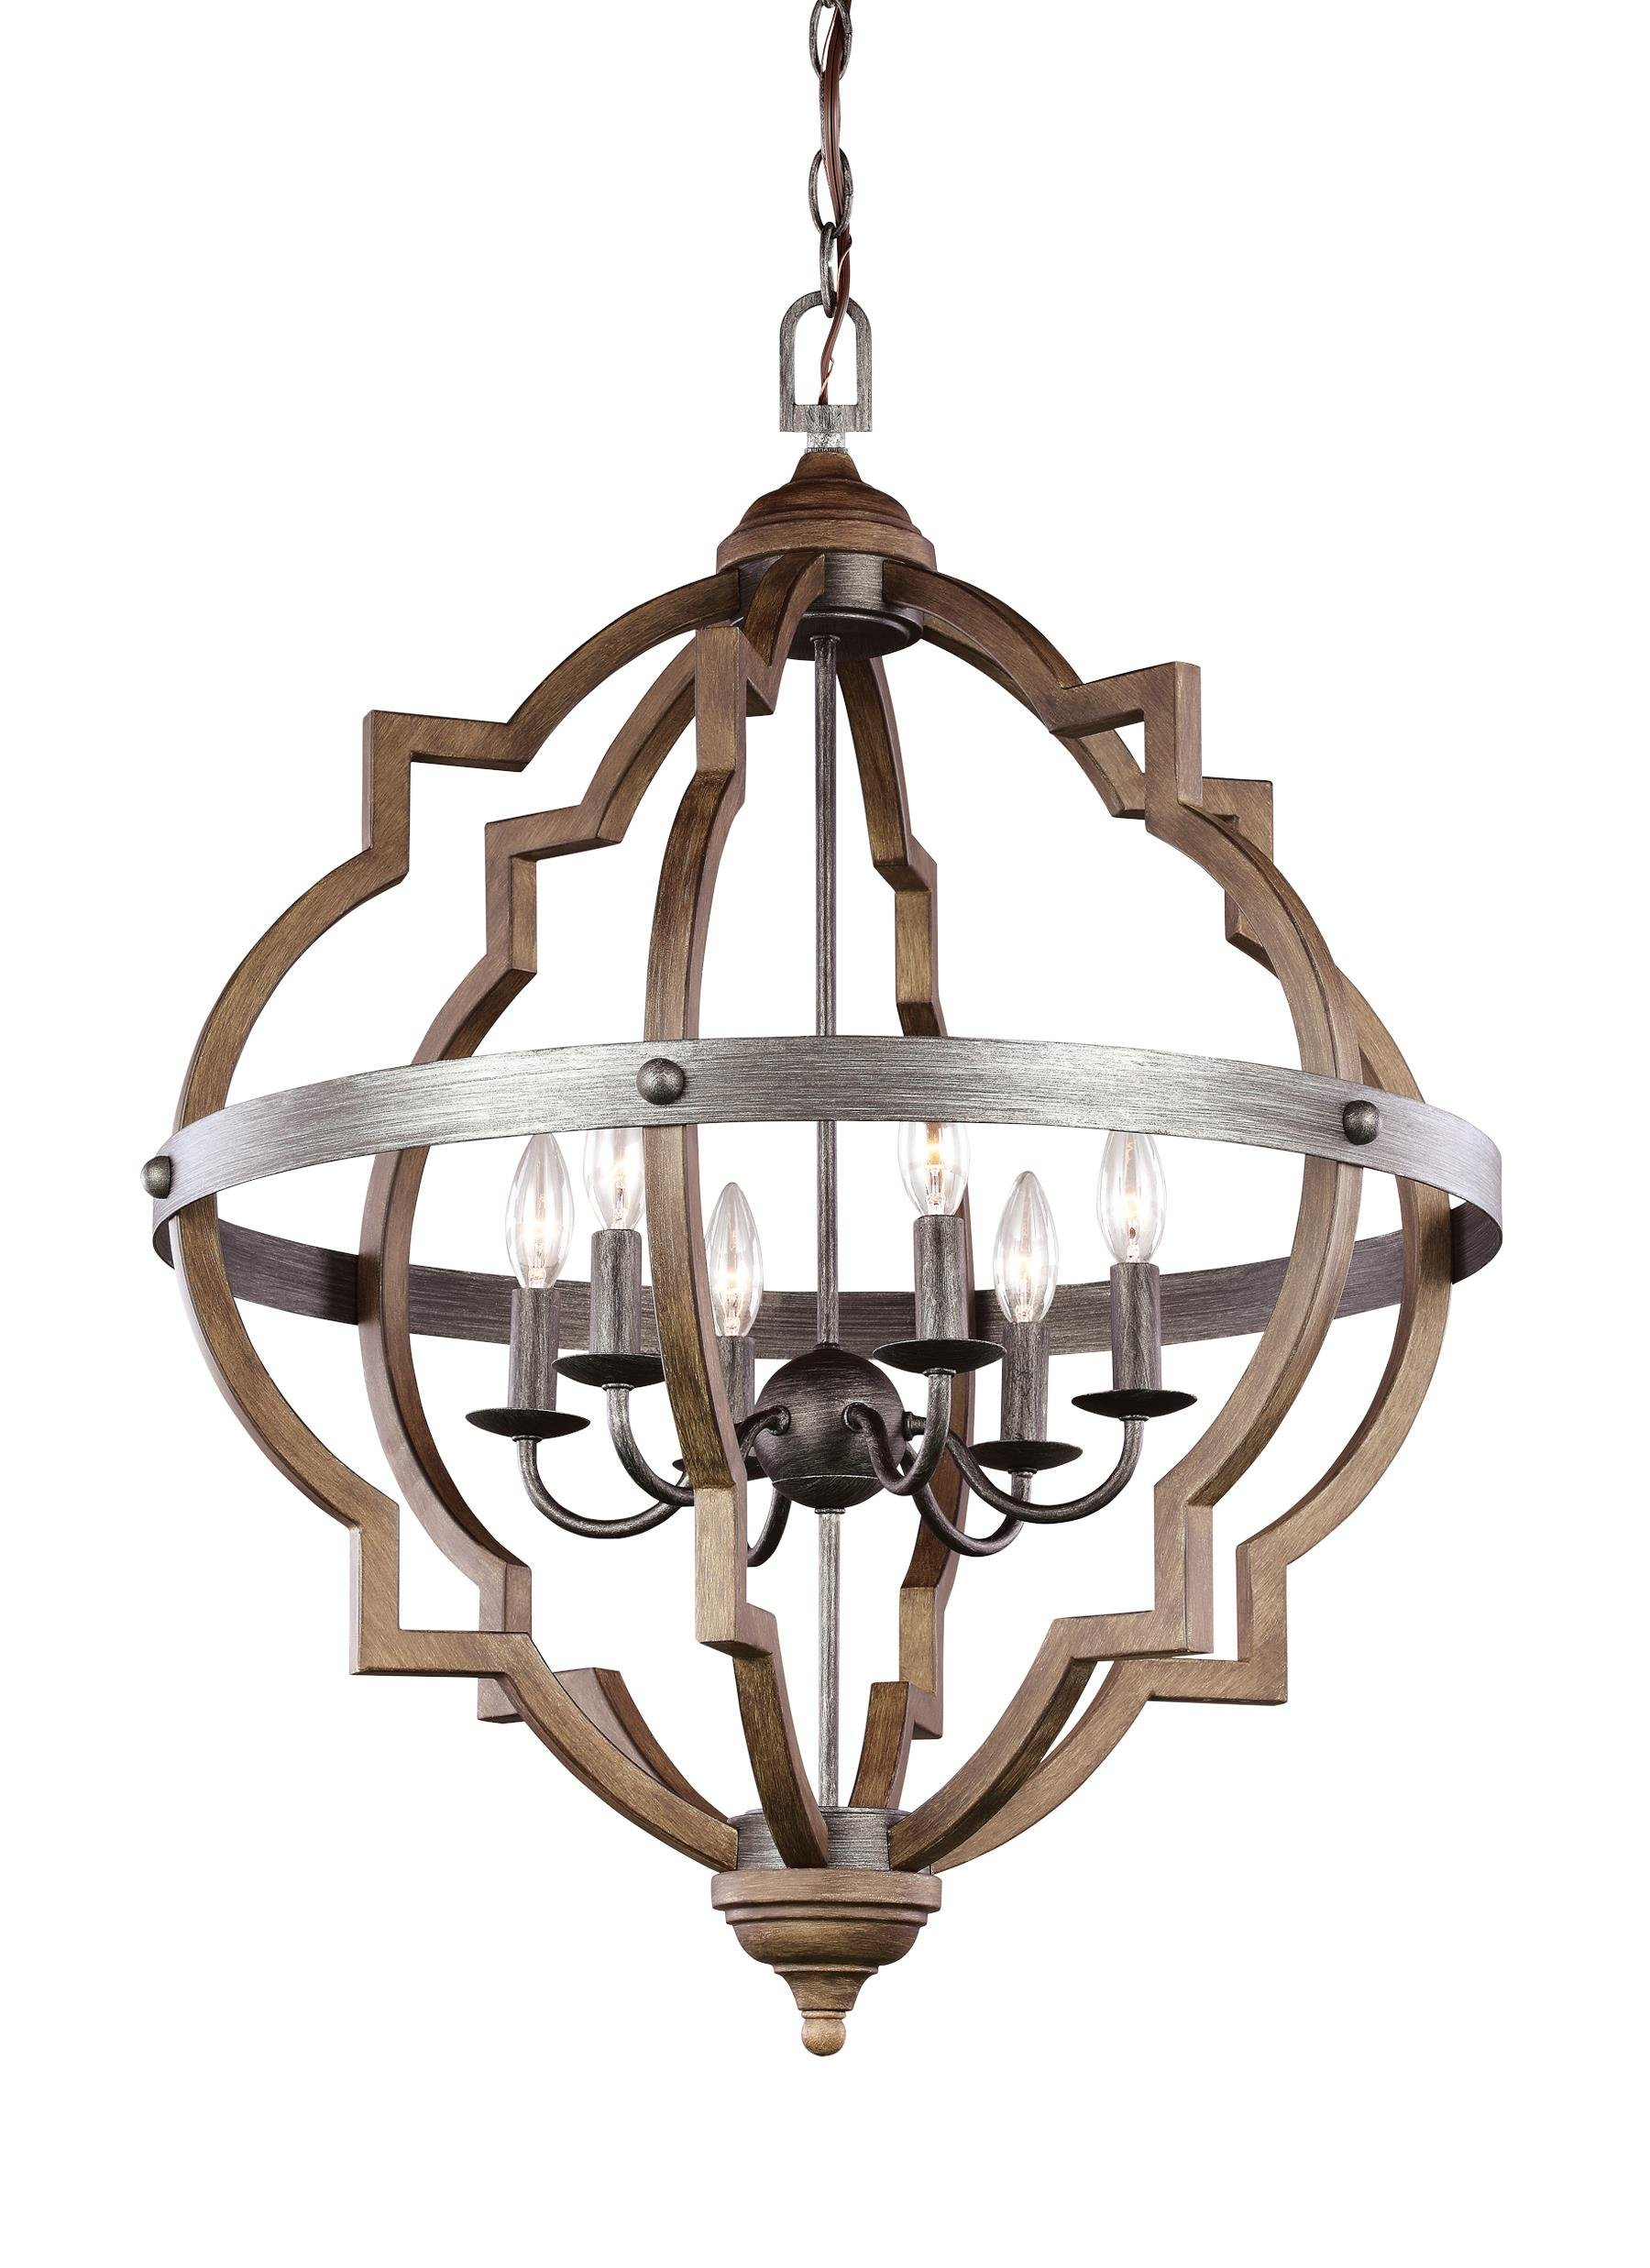 Bennington 6 Light Candle Style Chandelier Pertaining To Bennington 6 Light Candle Style Chandeliers (View 2 of 30)